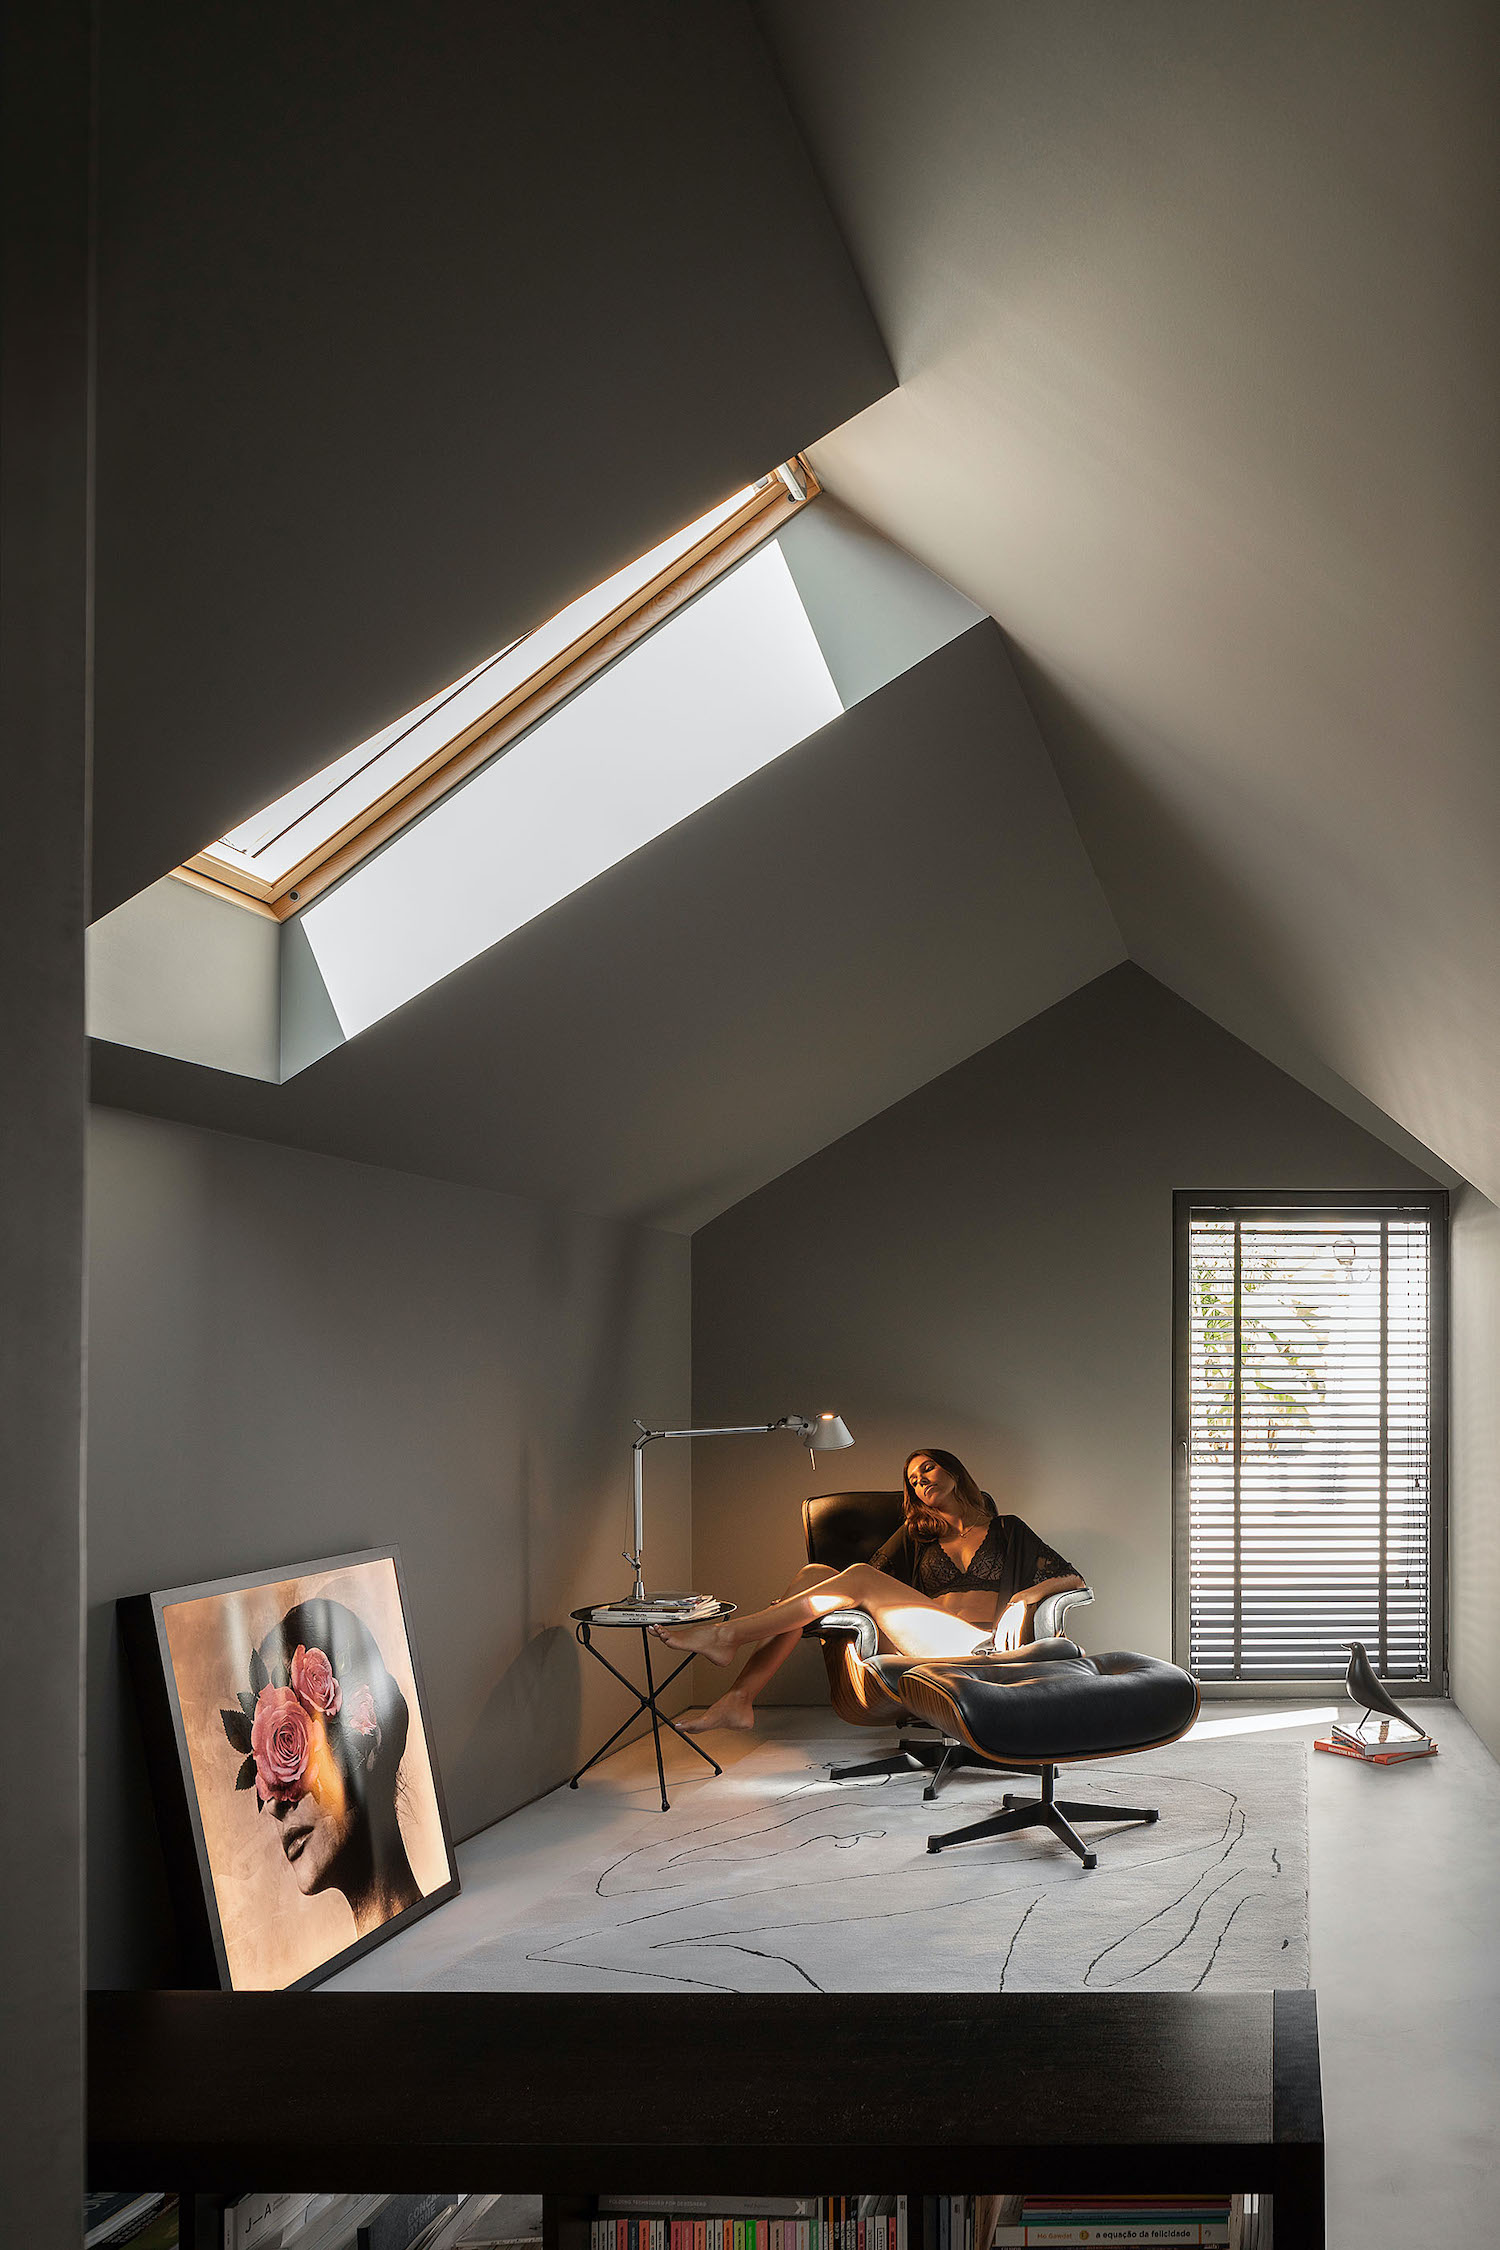 skylight in the ceiling let the sun enters the room